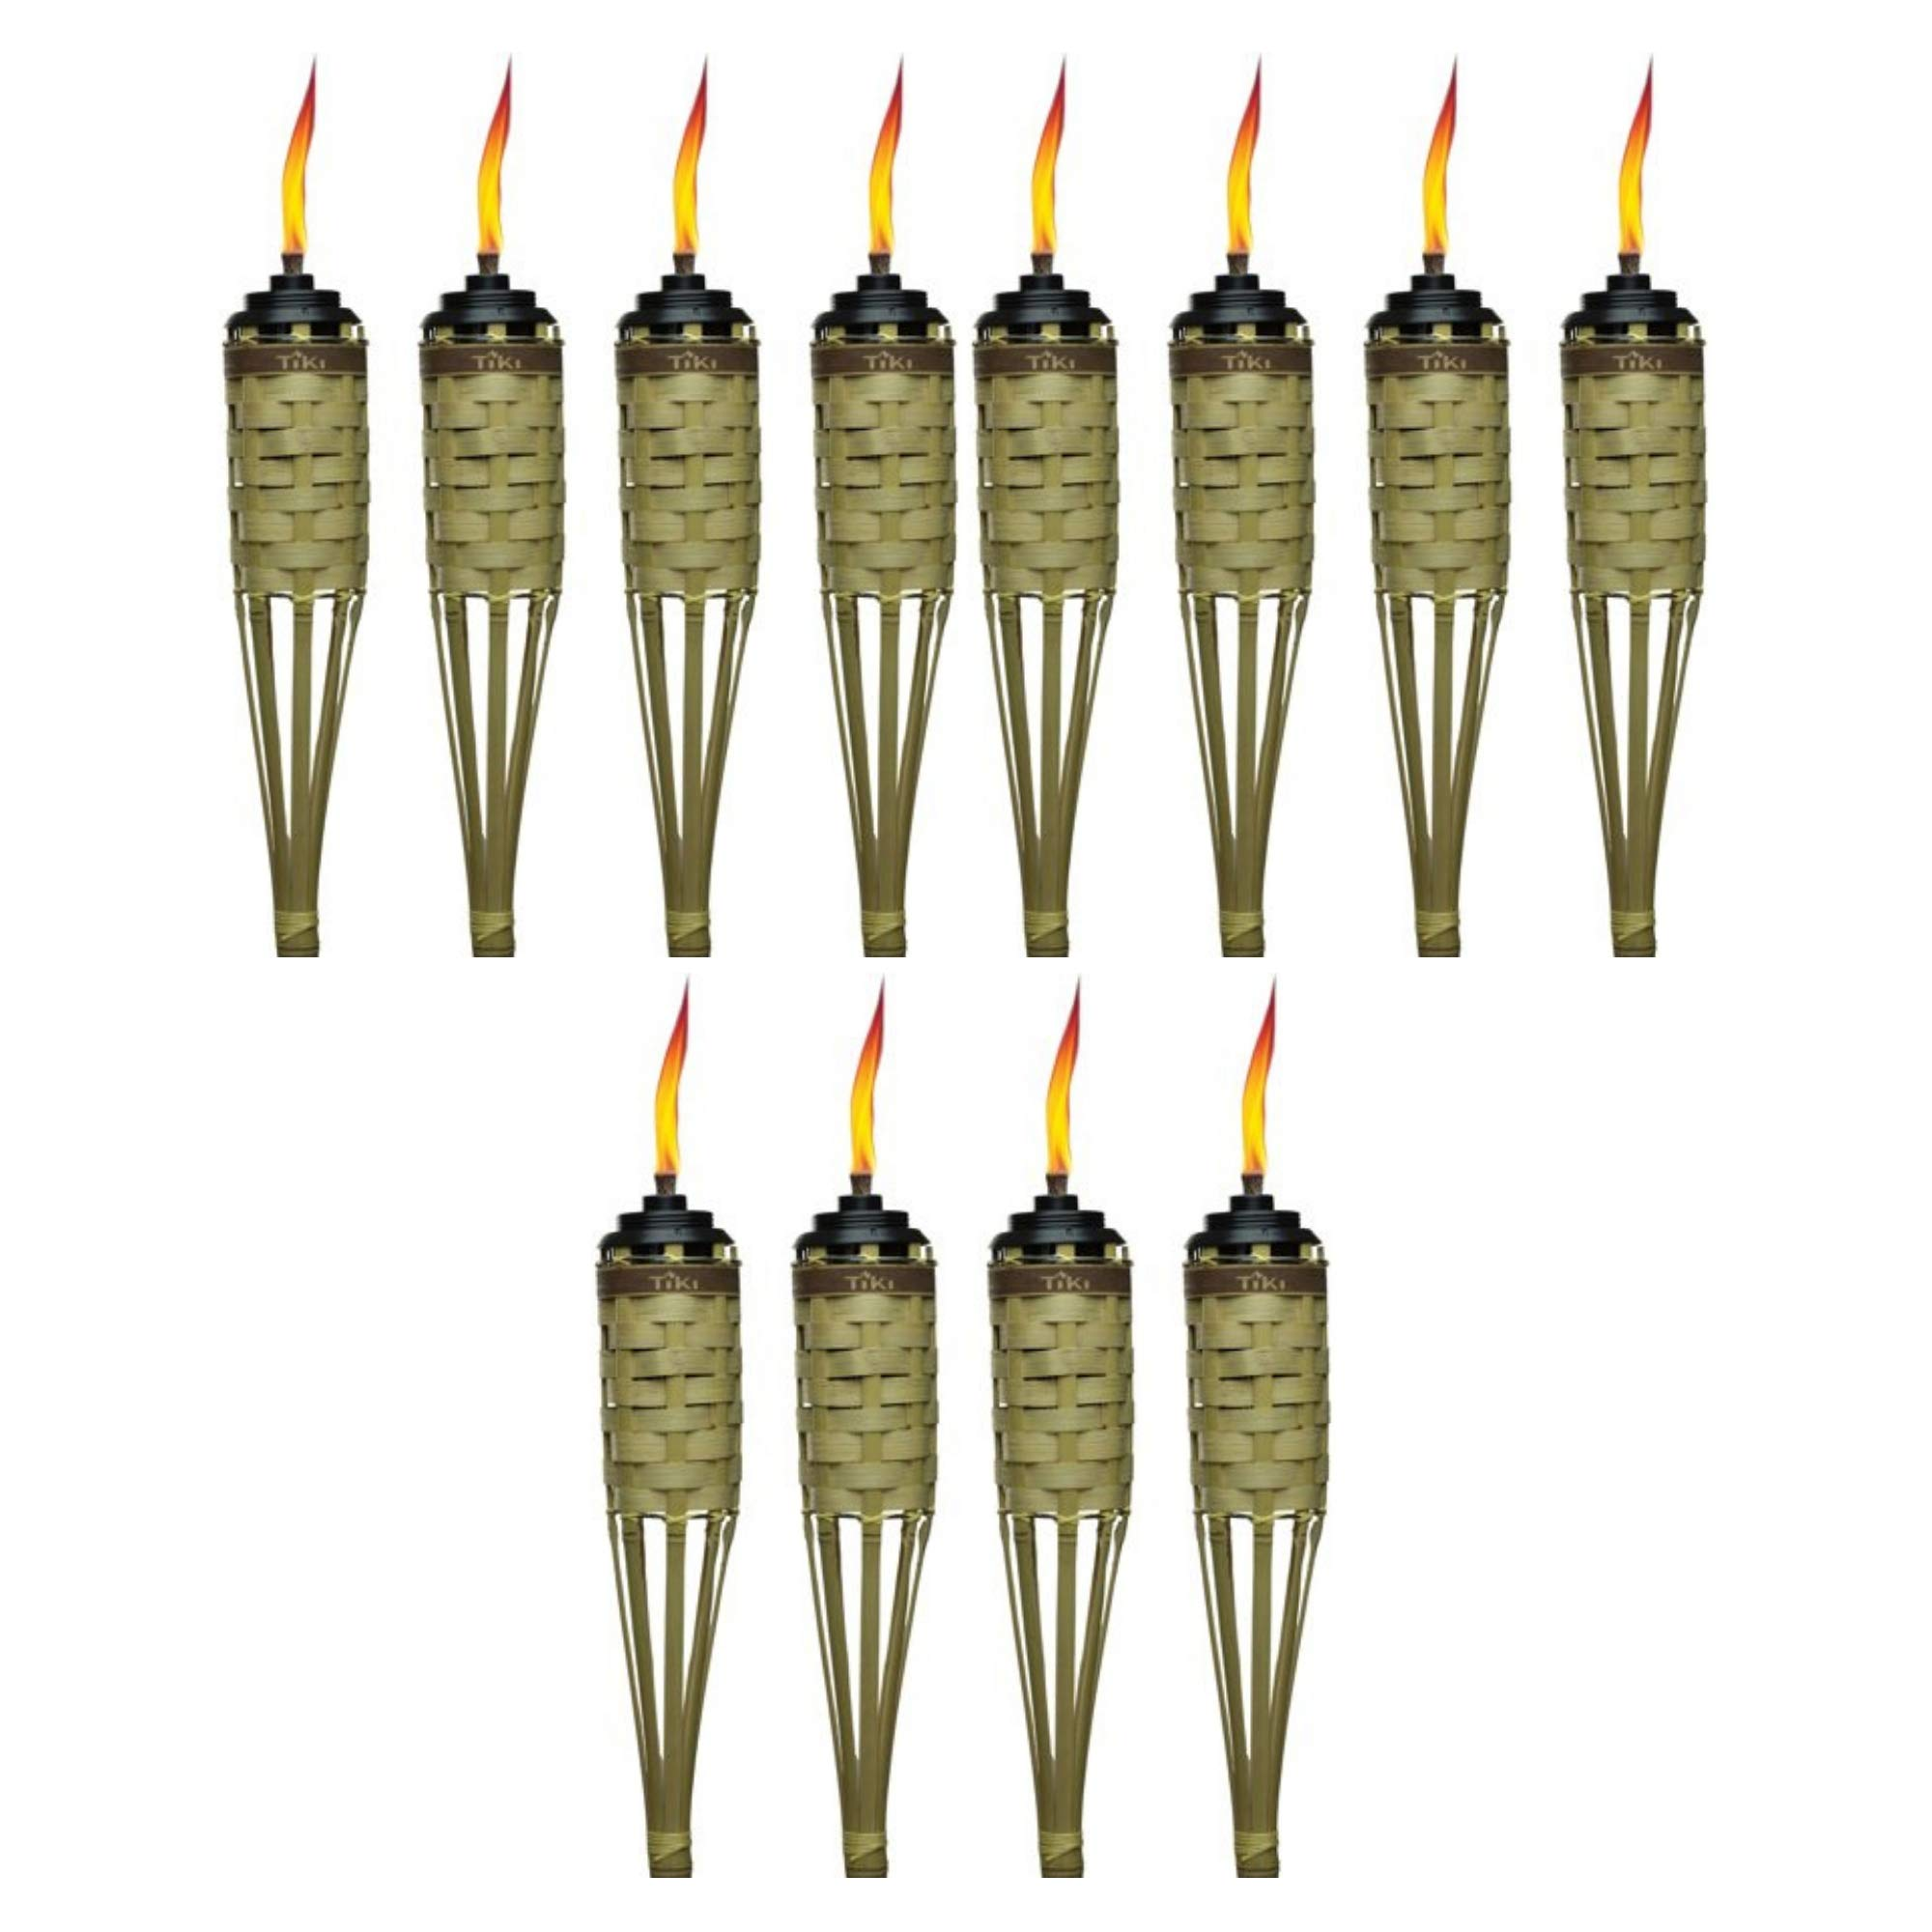 Tiki Brand 57'' Barbados Bamboo Torch with Easy-Pour System, Natural, Pack of 12 by Tiki (Image #1)